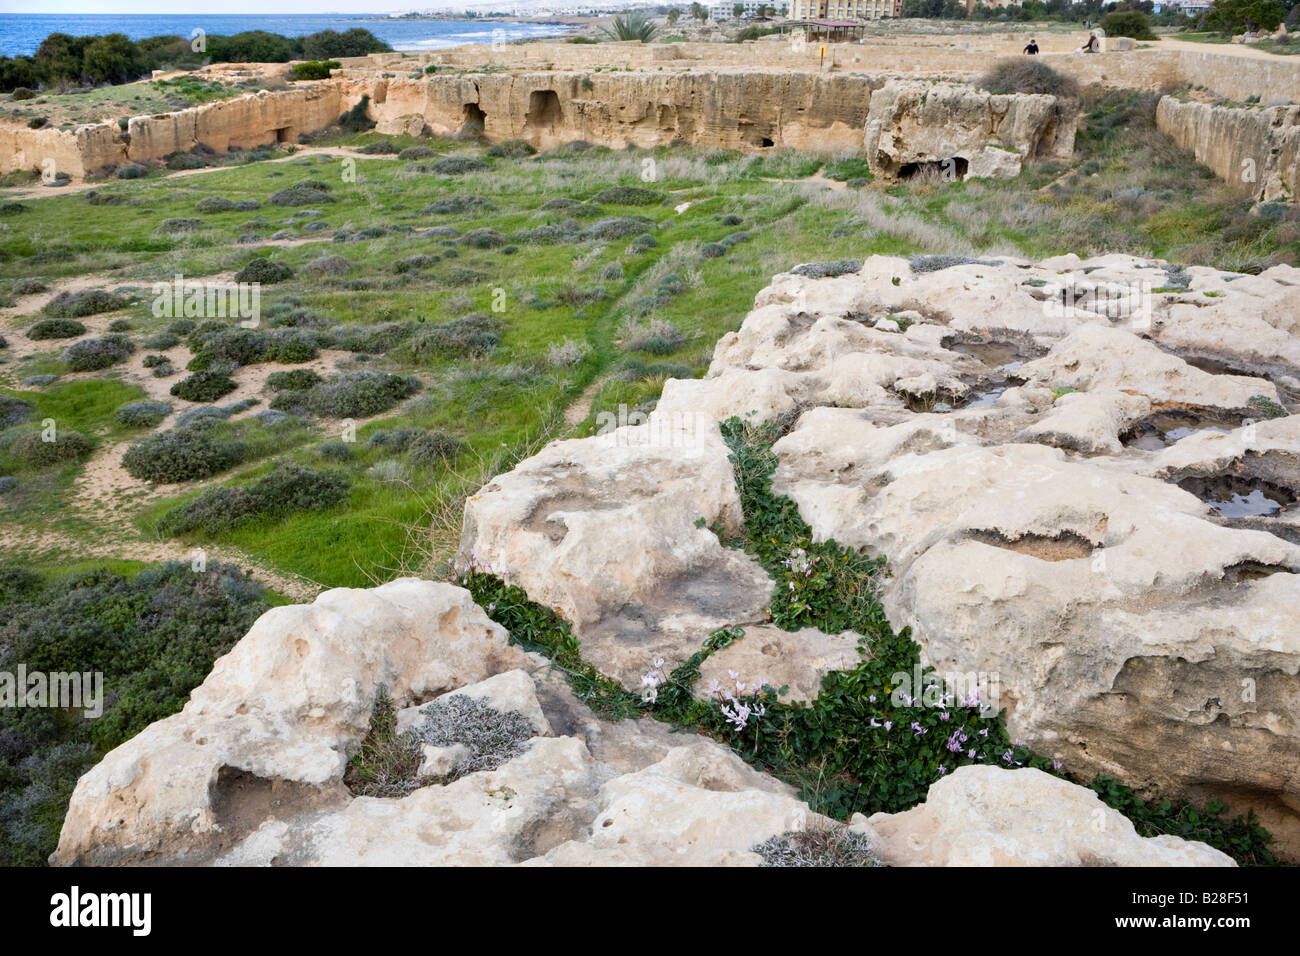 Some of the many rock cut tombs in the UNESCO World Heritage site The Tombs of the Kings, Pafos, Cyprus Stock Photo